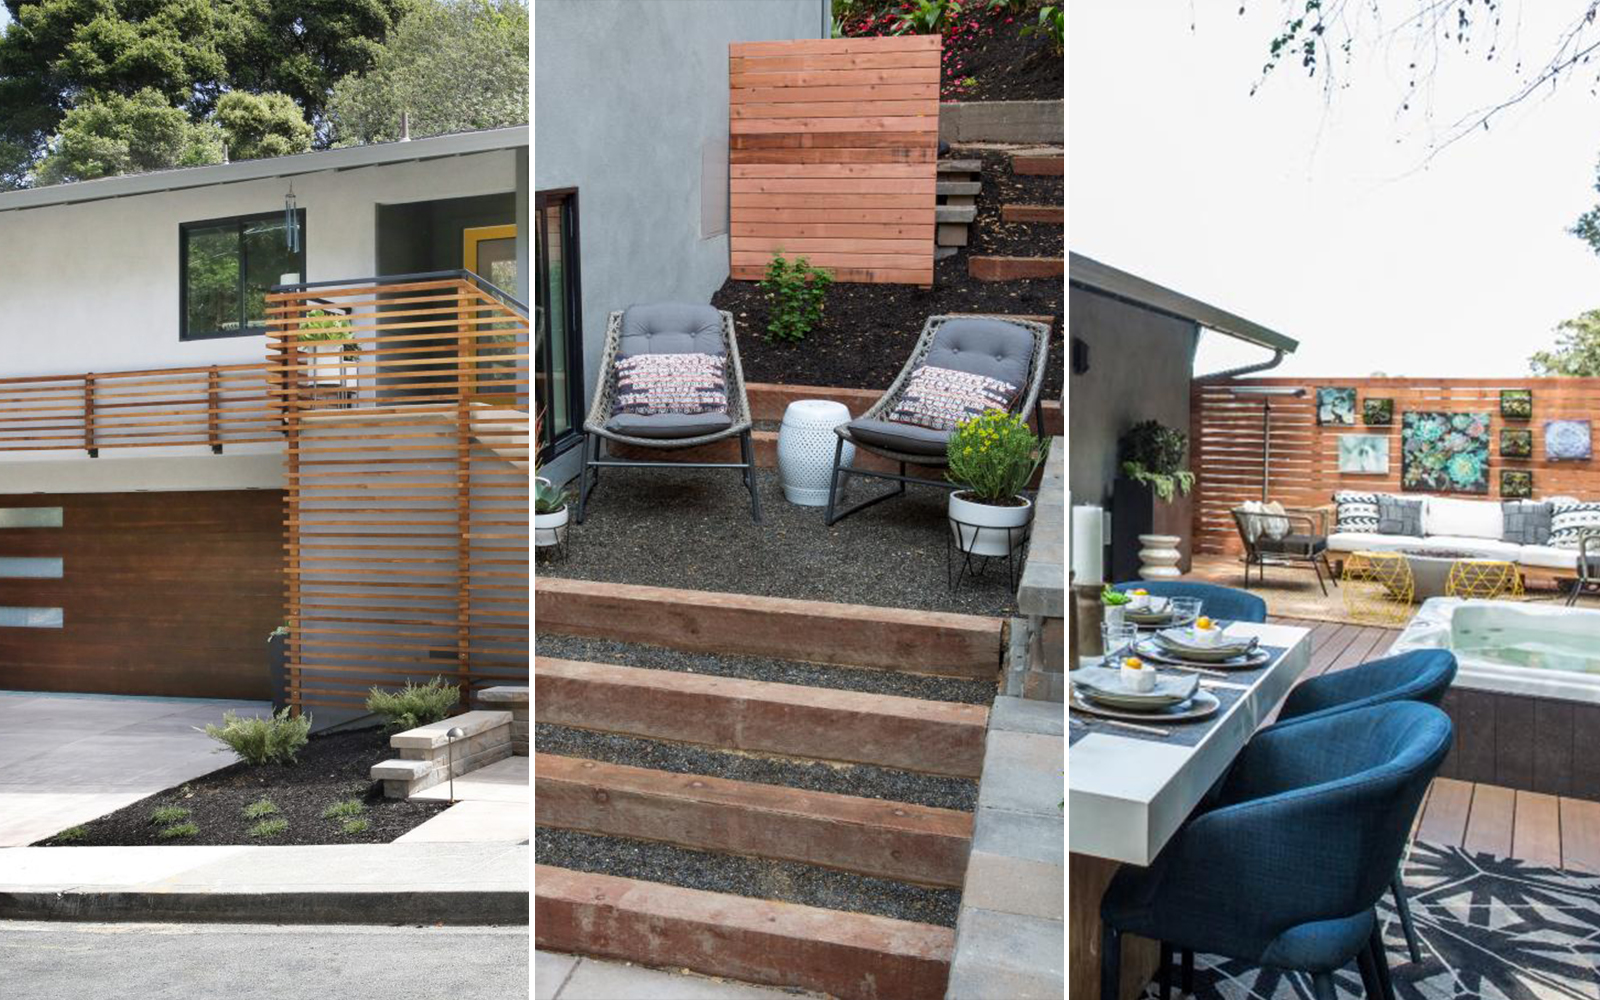 A photo collage showing a styled outdoor living space for season 6 of Brother vs Brother.